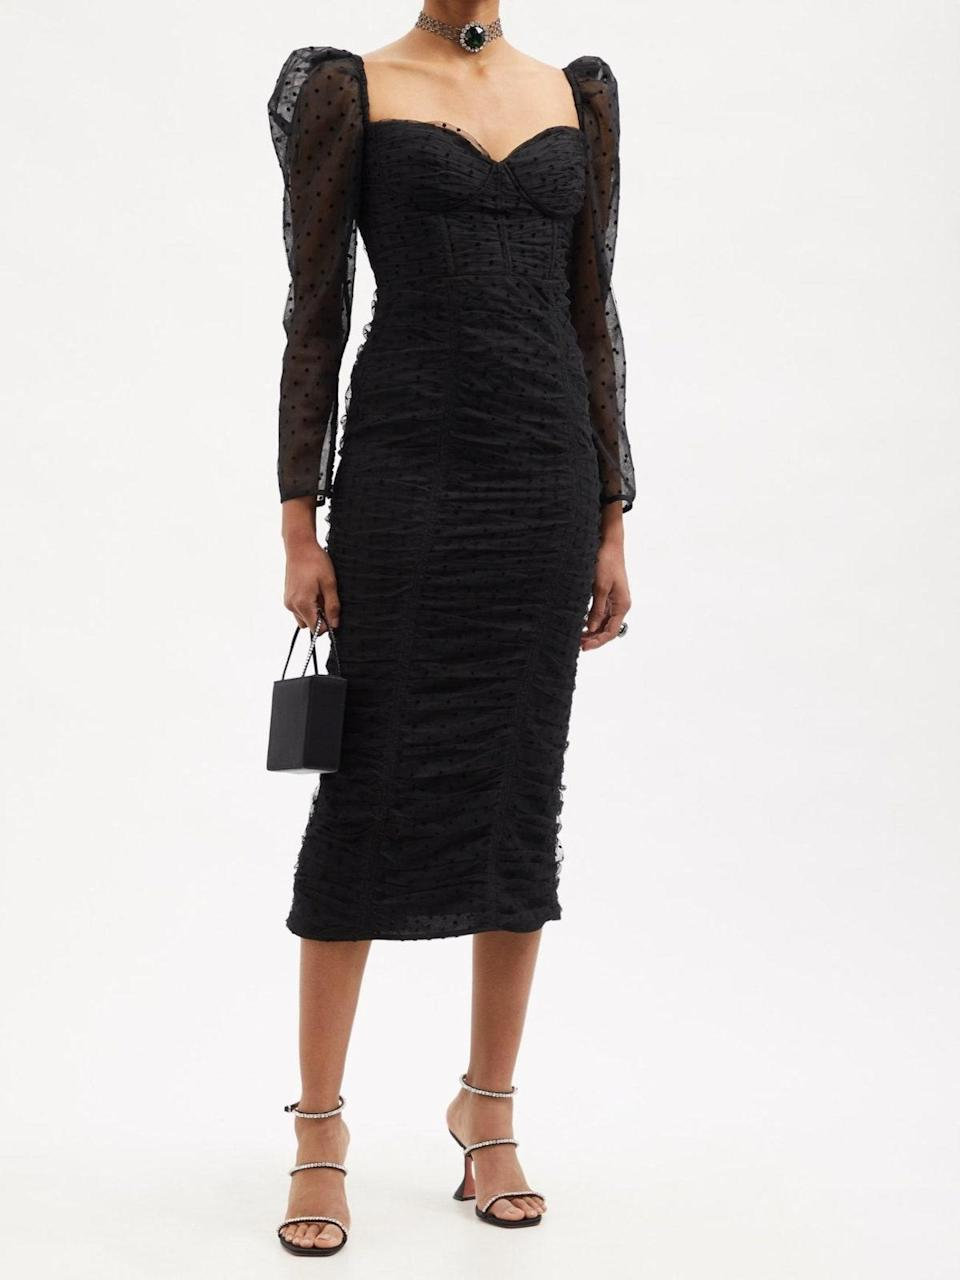 """Leave to Self-Portrait to bless us with yet another effortless-to-style piece. From the ruching to the sweetheart neckline and tulle puff sleeves, this is one black dress you'll never get bored of. $300, Matches Fashion. <a href=""""https://www.matchesfashion.com/us/products/Self-Portrait-Sweetheart-ruched-Swiss-dot-tulle-midi-dress-1436930"""" rel=""""nofollow noopener"""" target=""""_blank"""" data-ylk=""""slk:Get it now!"""" class=""""link rapid-noclick-resp"""">Get it now!</a>"""